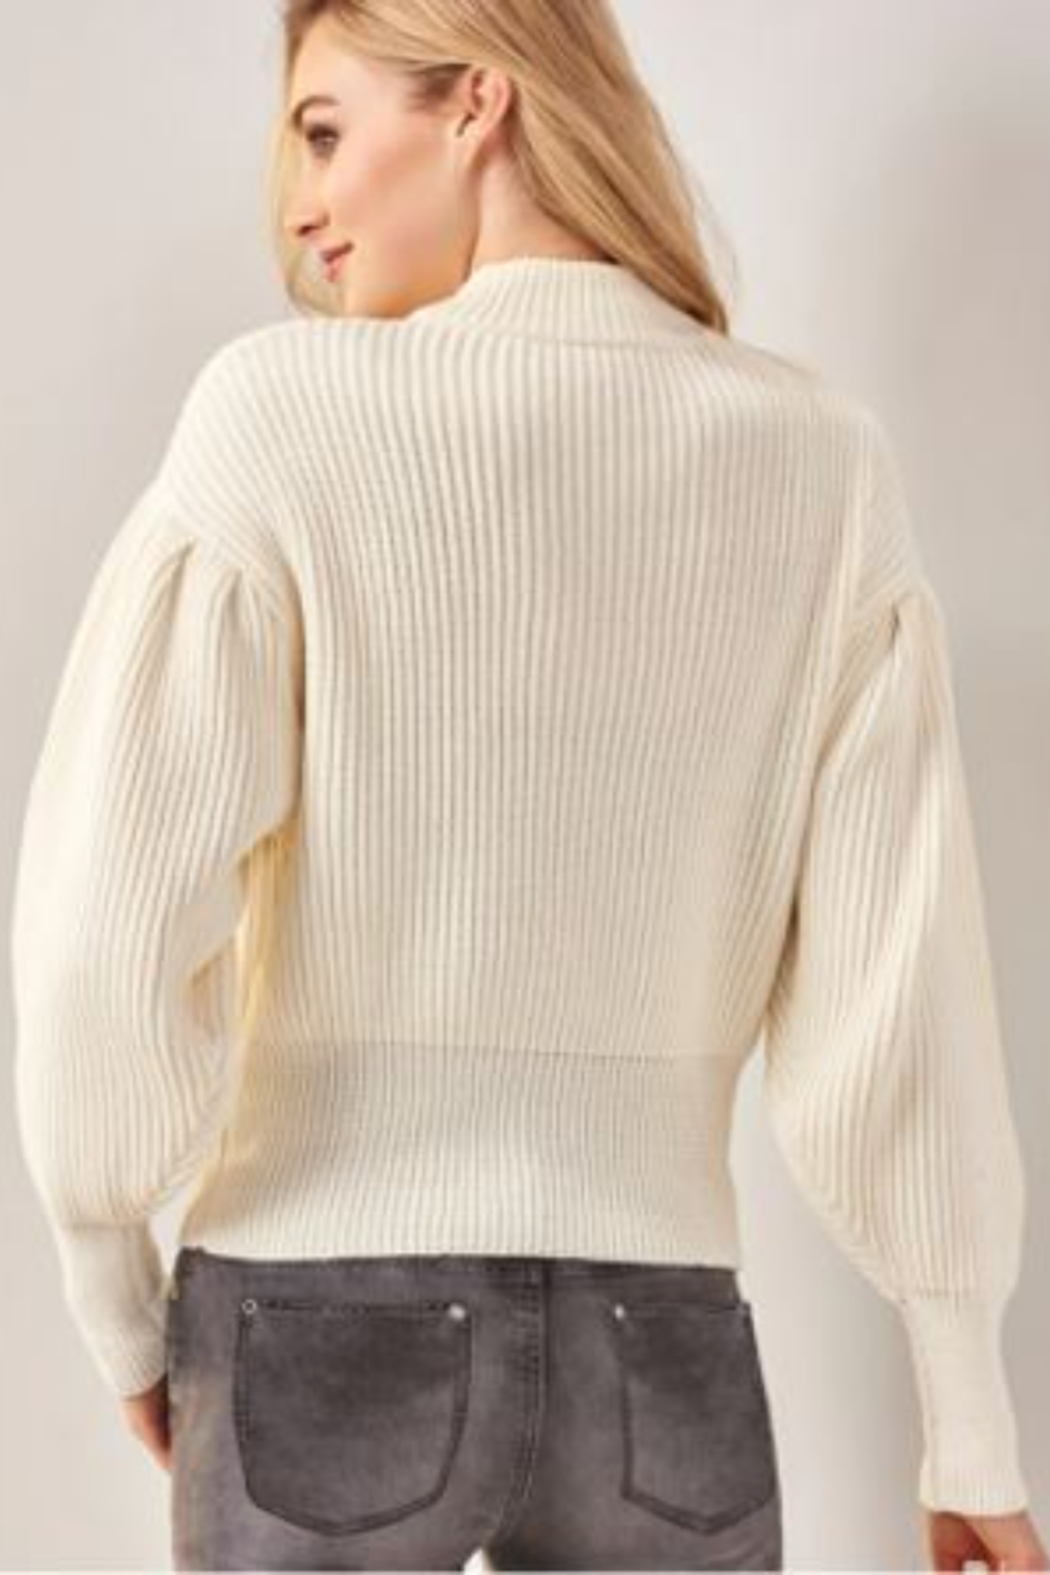 Charlie Paige  Balloon Sleeve Sweater - Side Cropped Image